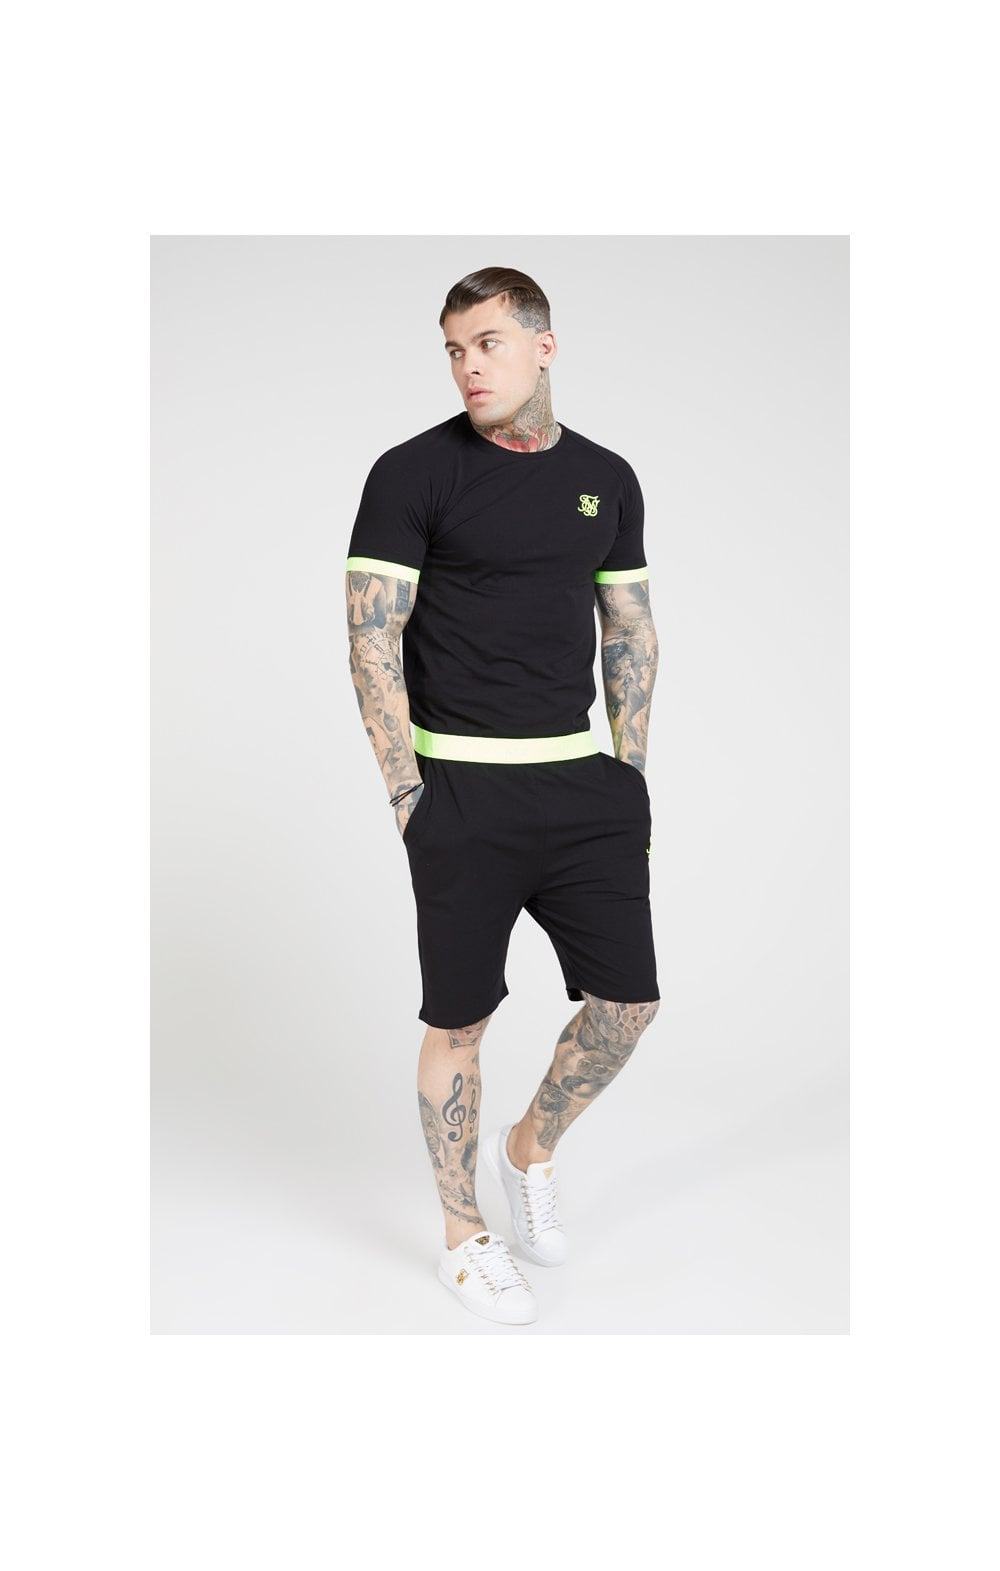 SikSilk Relaxed Fit Shorts – Black & Neon Yellow (4)